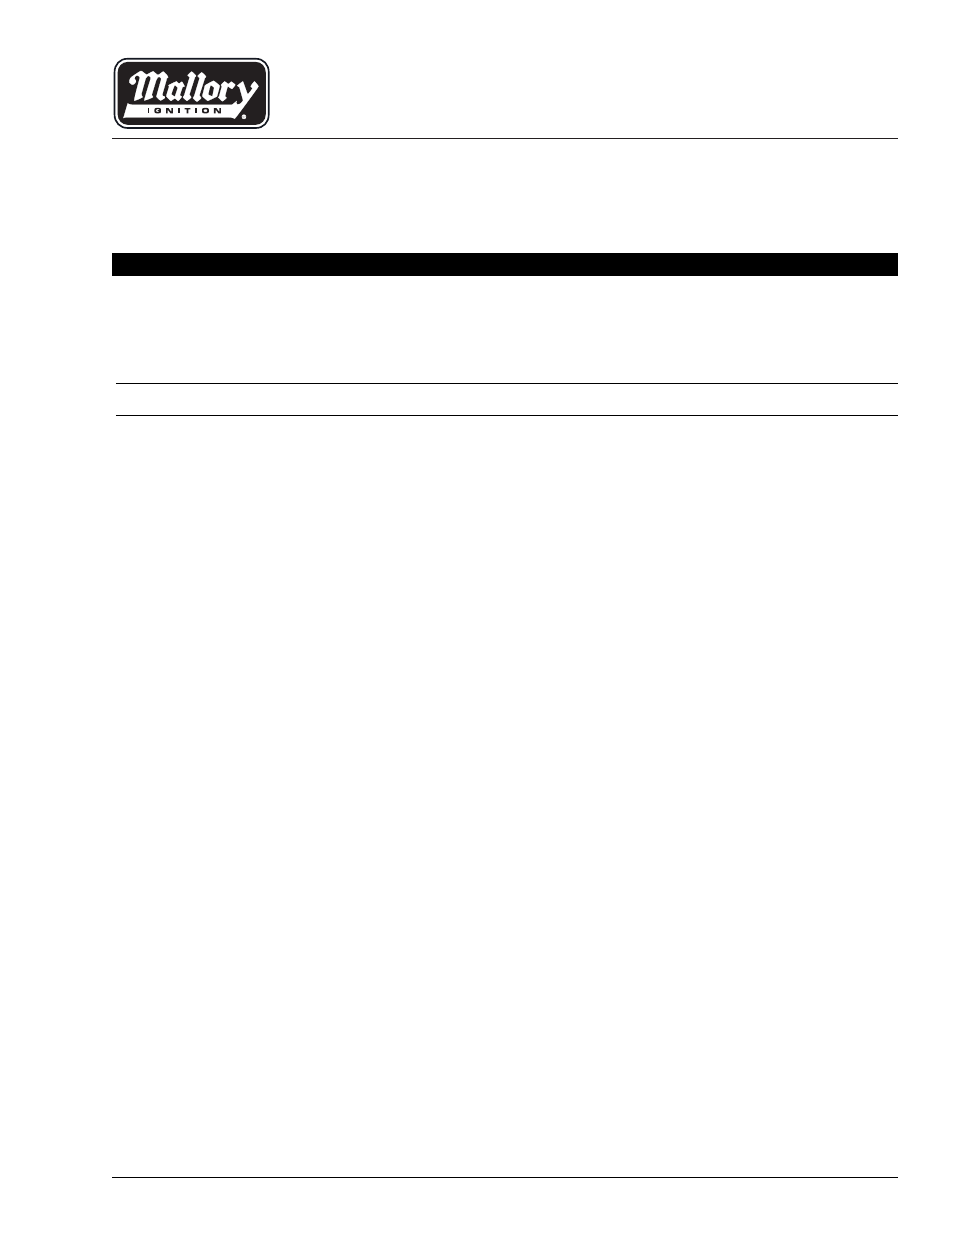 medium resolution of mallory ignition mallory unilite distributor user manual 13 pages unilite ignition wiring diagram coil and distributor